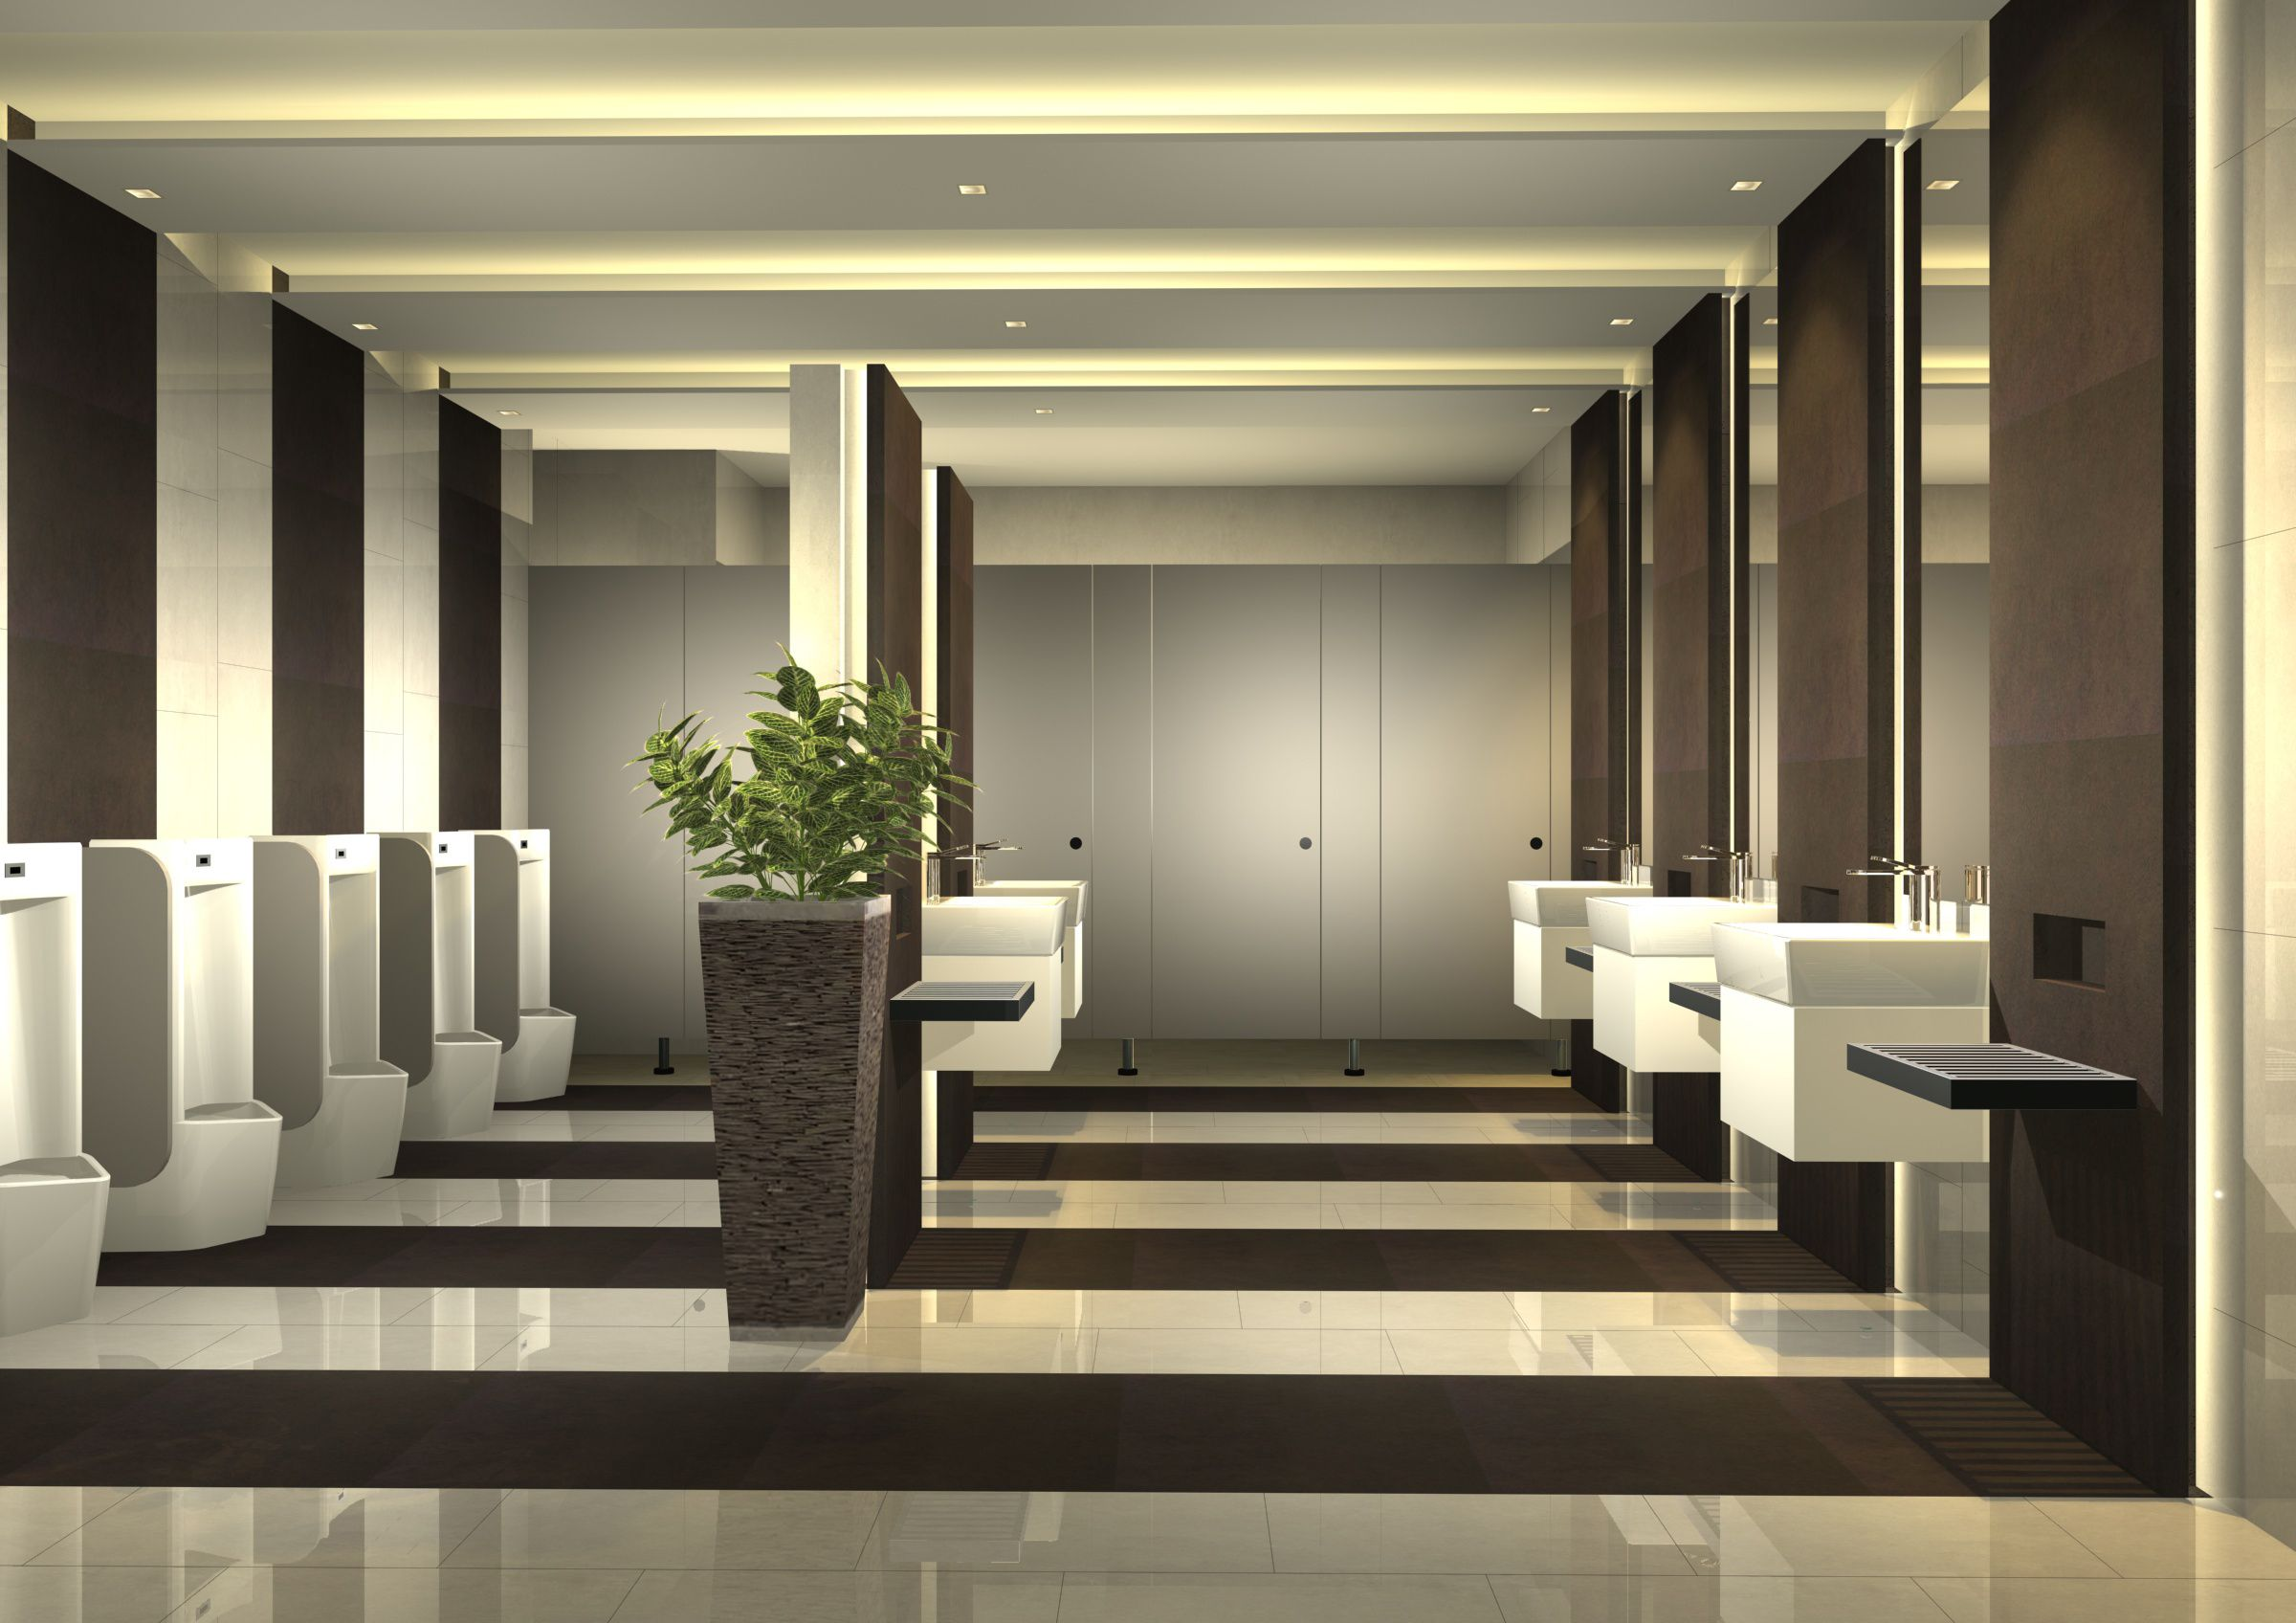 Treasury building toilet male s1 1 d3 11212014 office for Washroom interior design